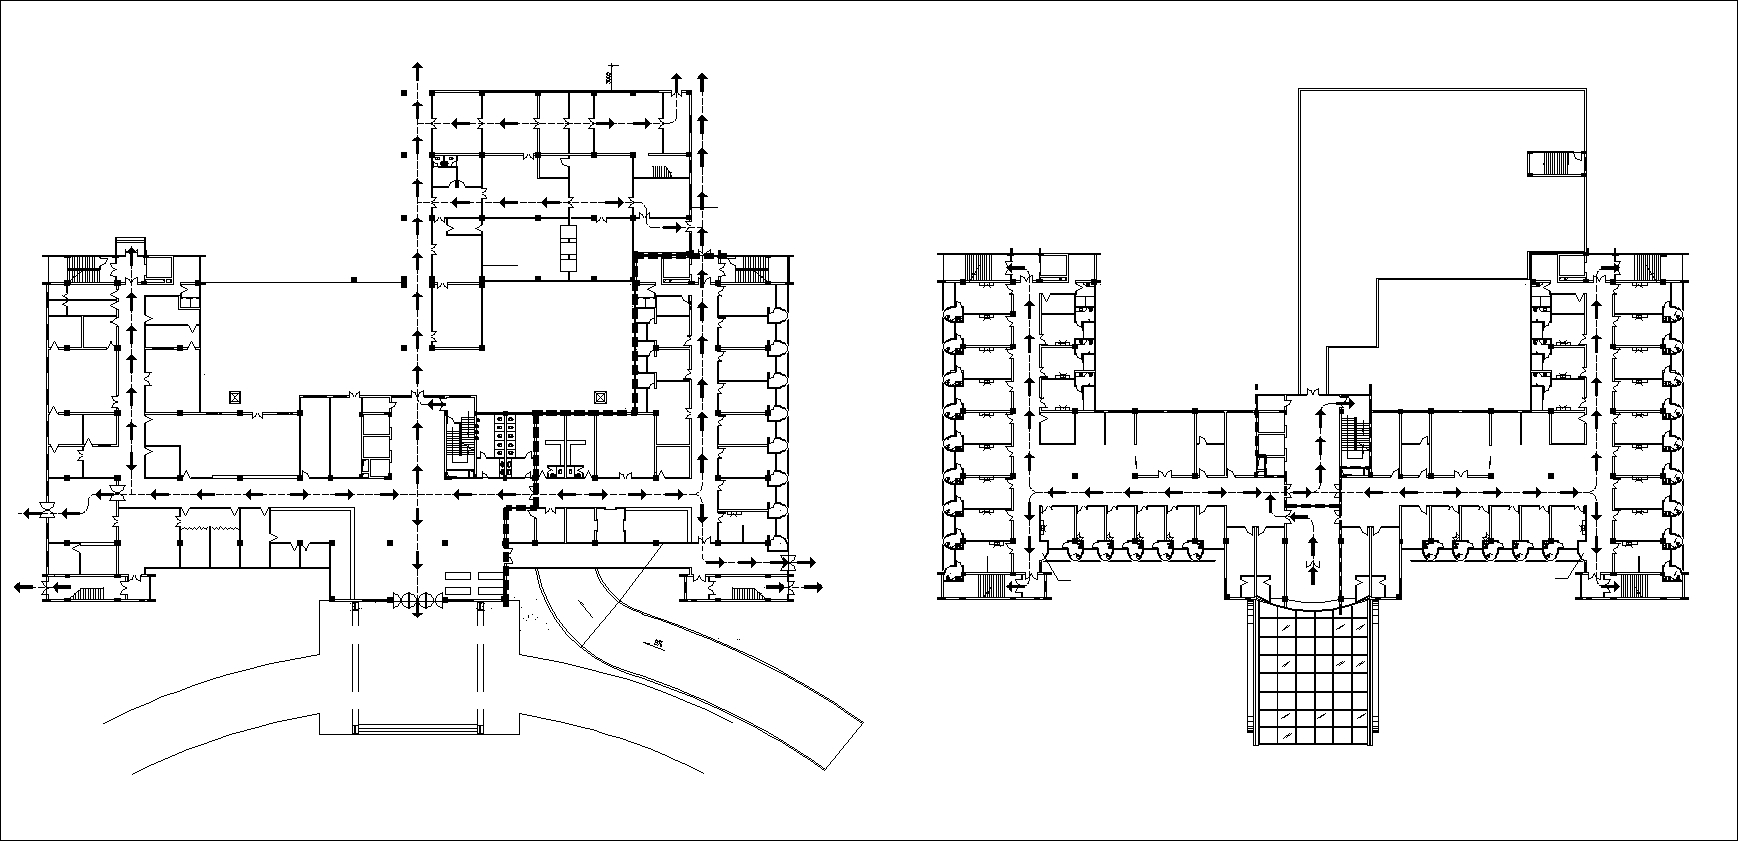 Hospital Design Drawings Cad Files Dwg Files Plans And Details